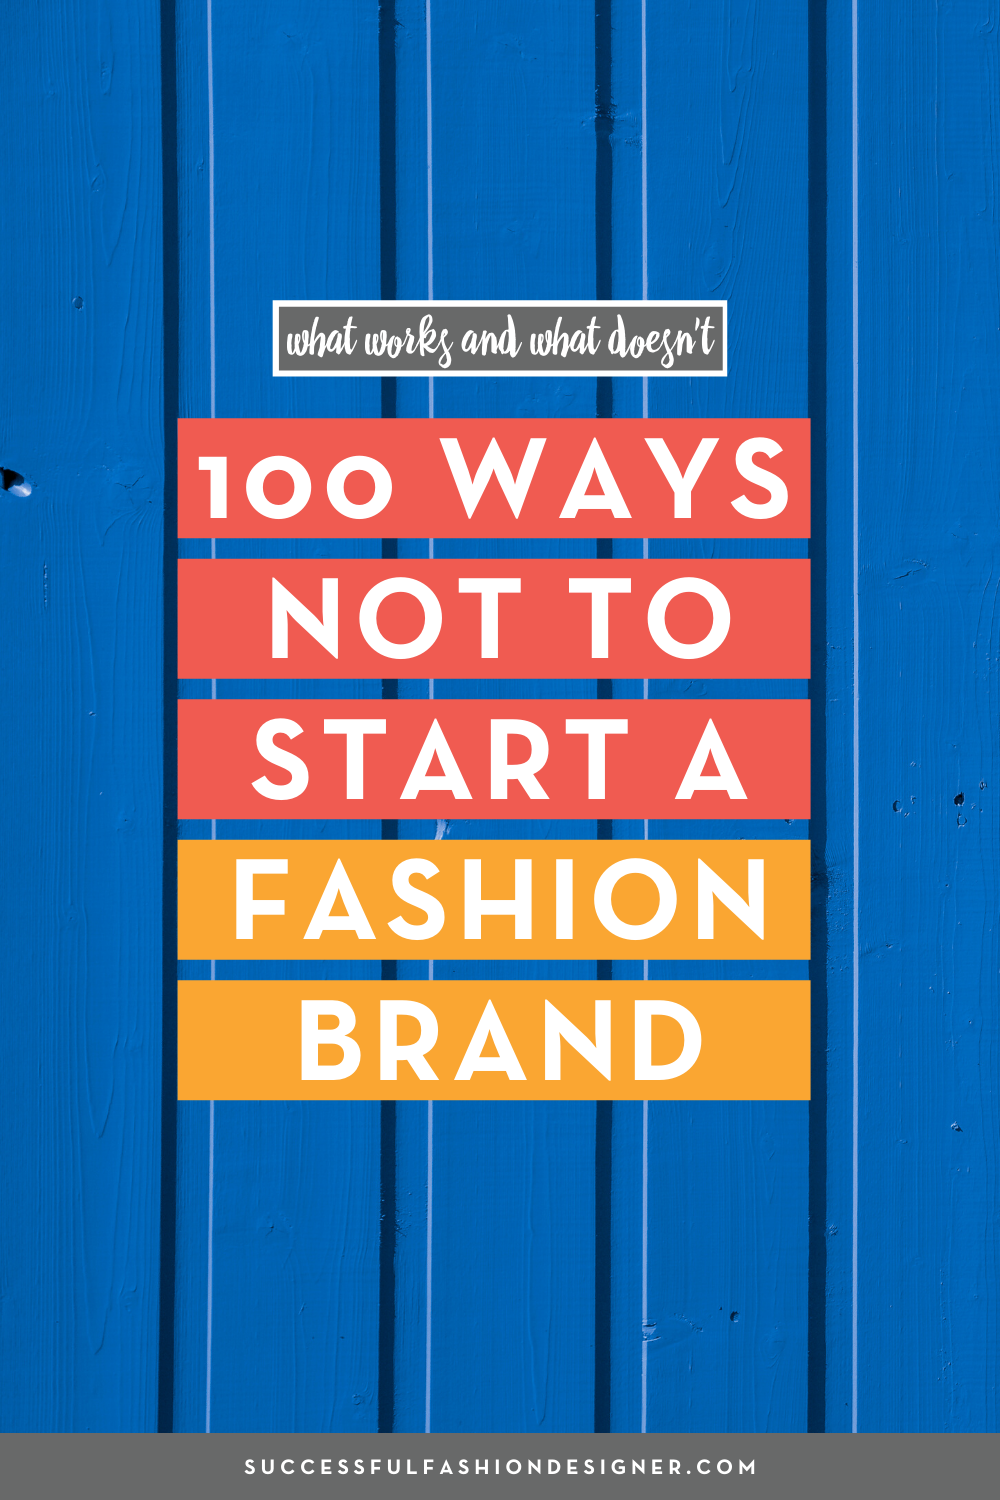 100 Ways Not To Start A Fashion Brand Career In Fashion Designing Fashion Brand Fashion Design Jobs